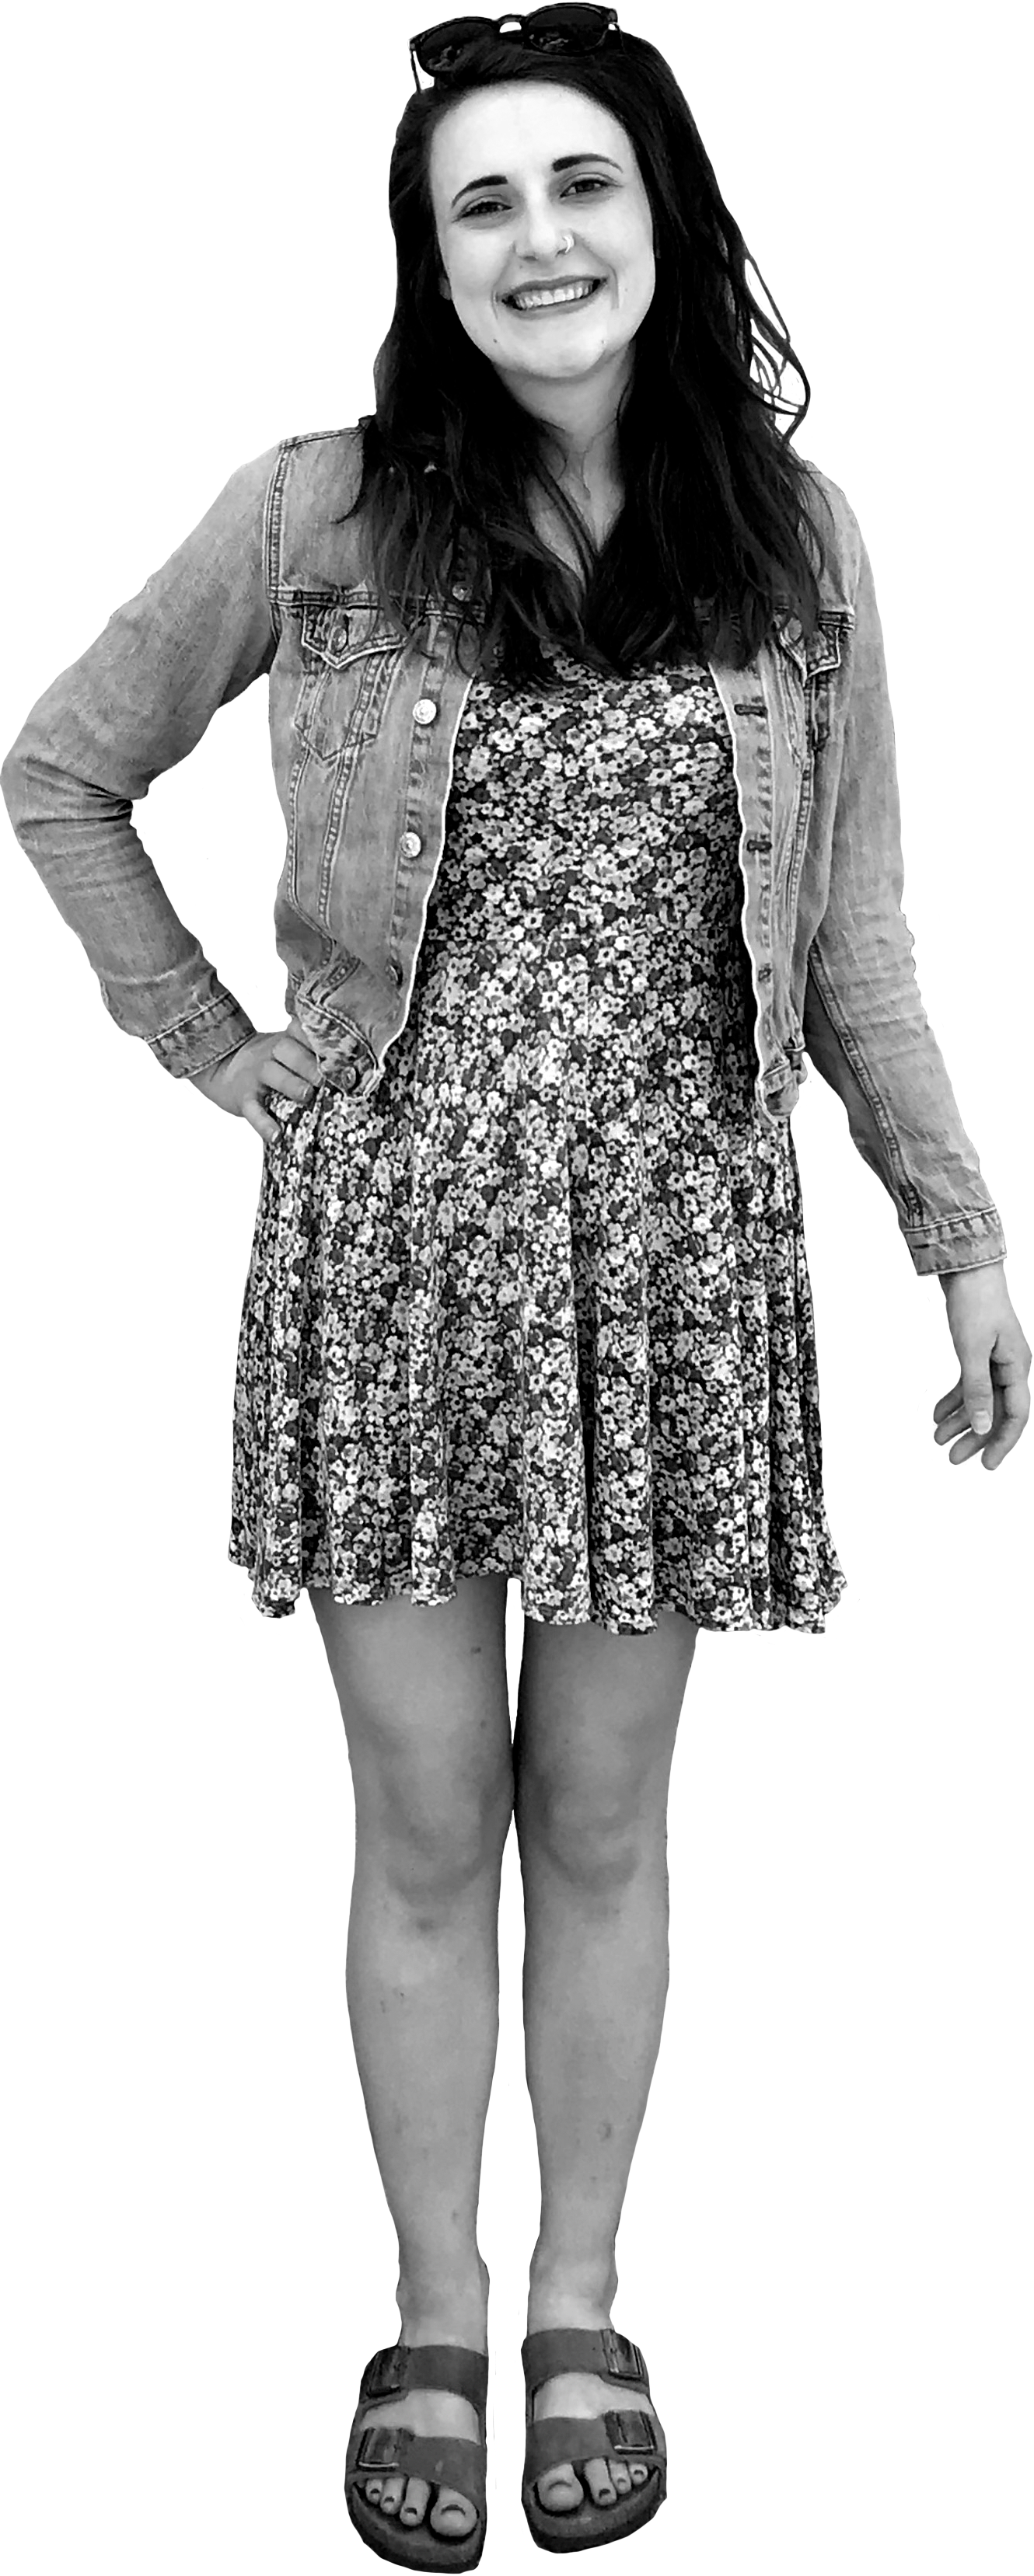 Image of Nicole standing with her right hand on her hip and her left arm extended. Nicole is white and has long, wavy dark brown hair. She is wearing a floral dress, jean jacket, birkenstocks, and has a pair of sunglasses on her head.